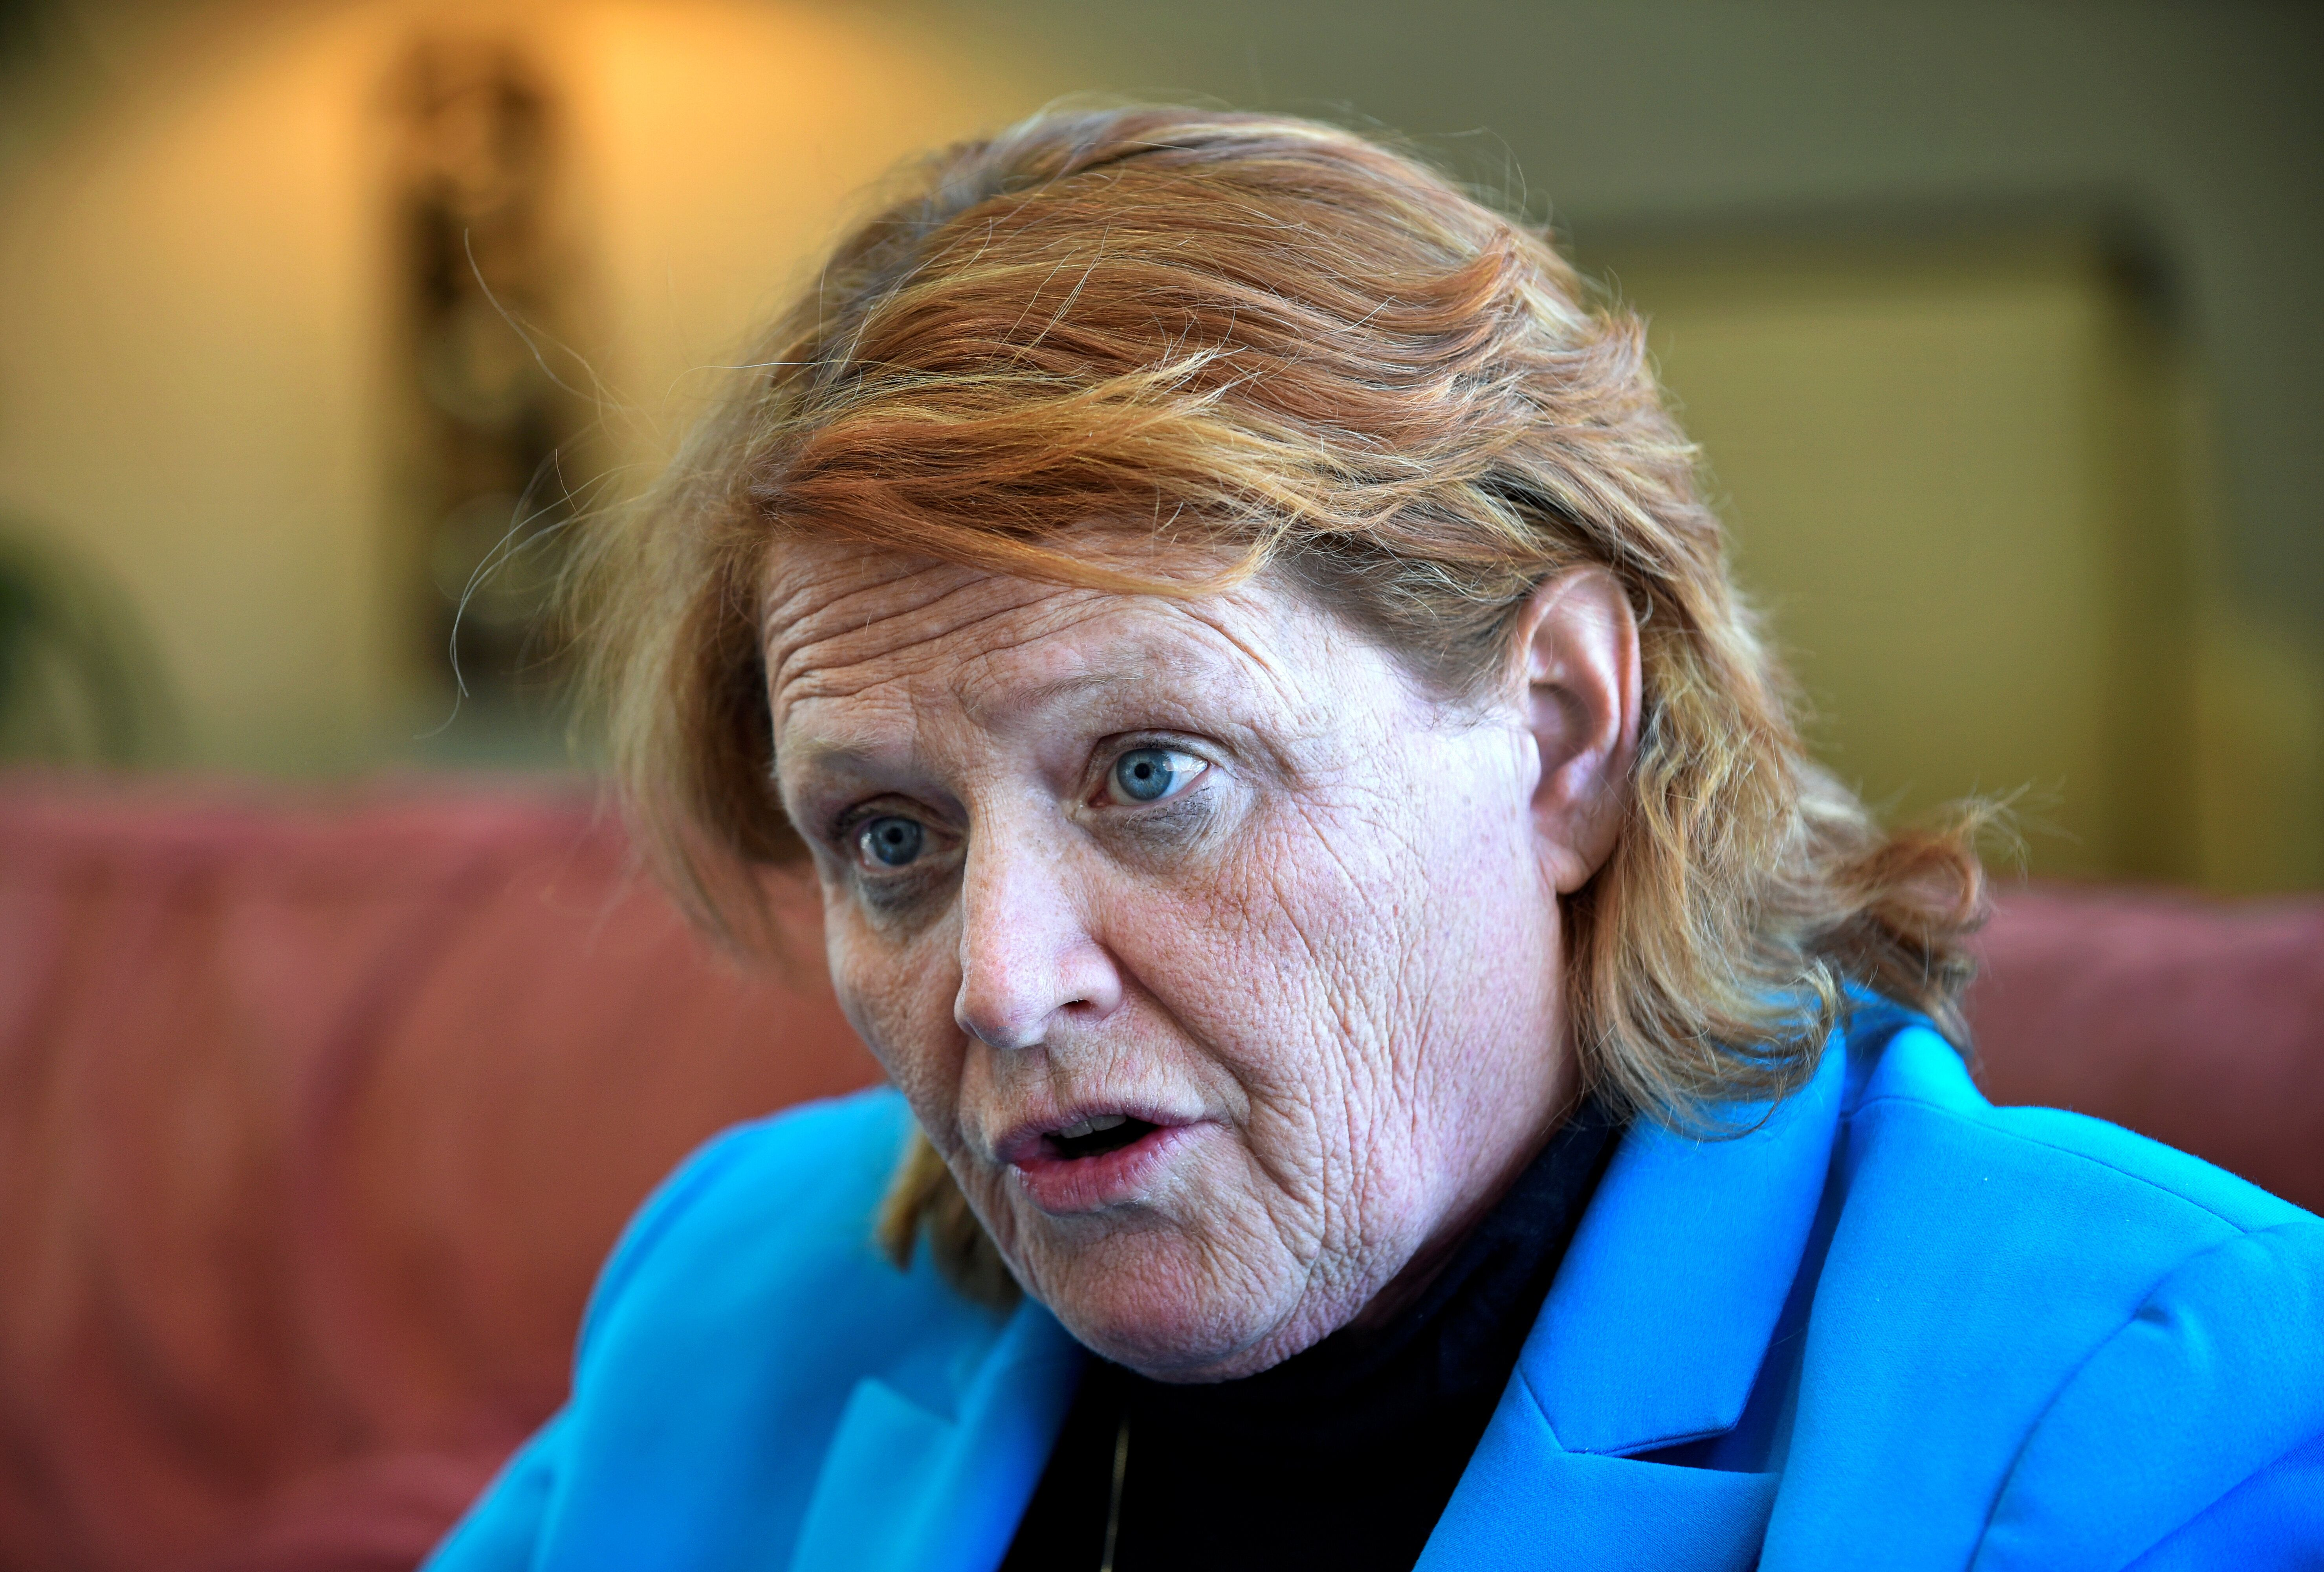 Former Sen. Heidi Heitkamp (D-N.D.) and other former Democratic lawmakers withrural bona fides have been recruited to l